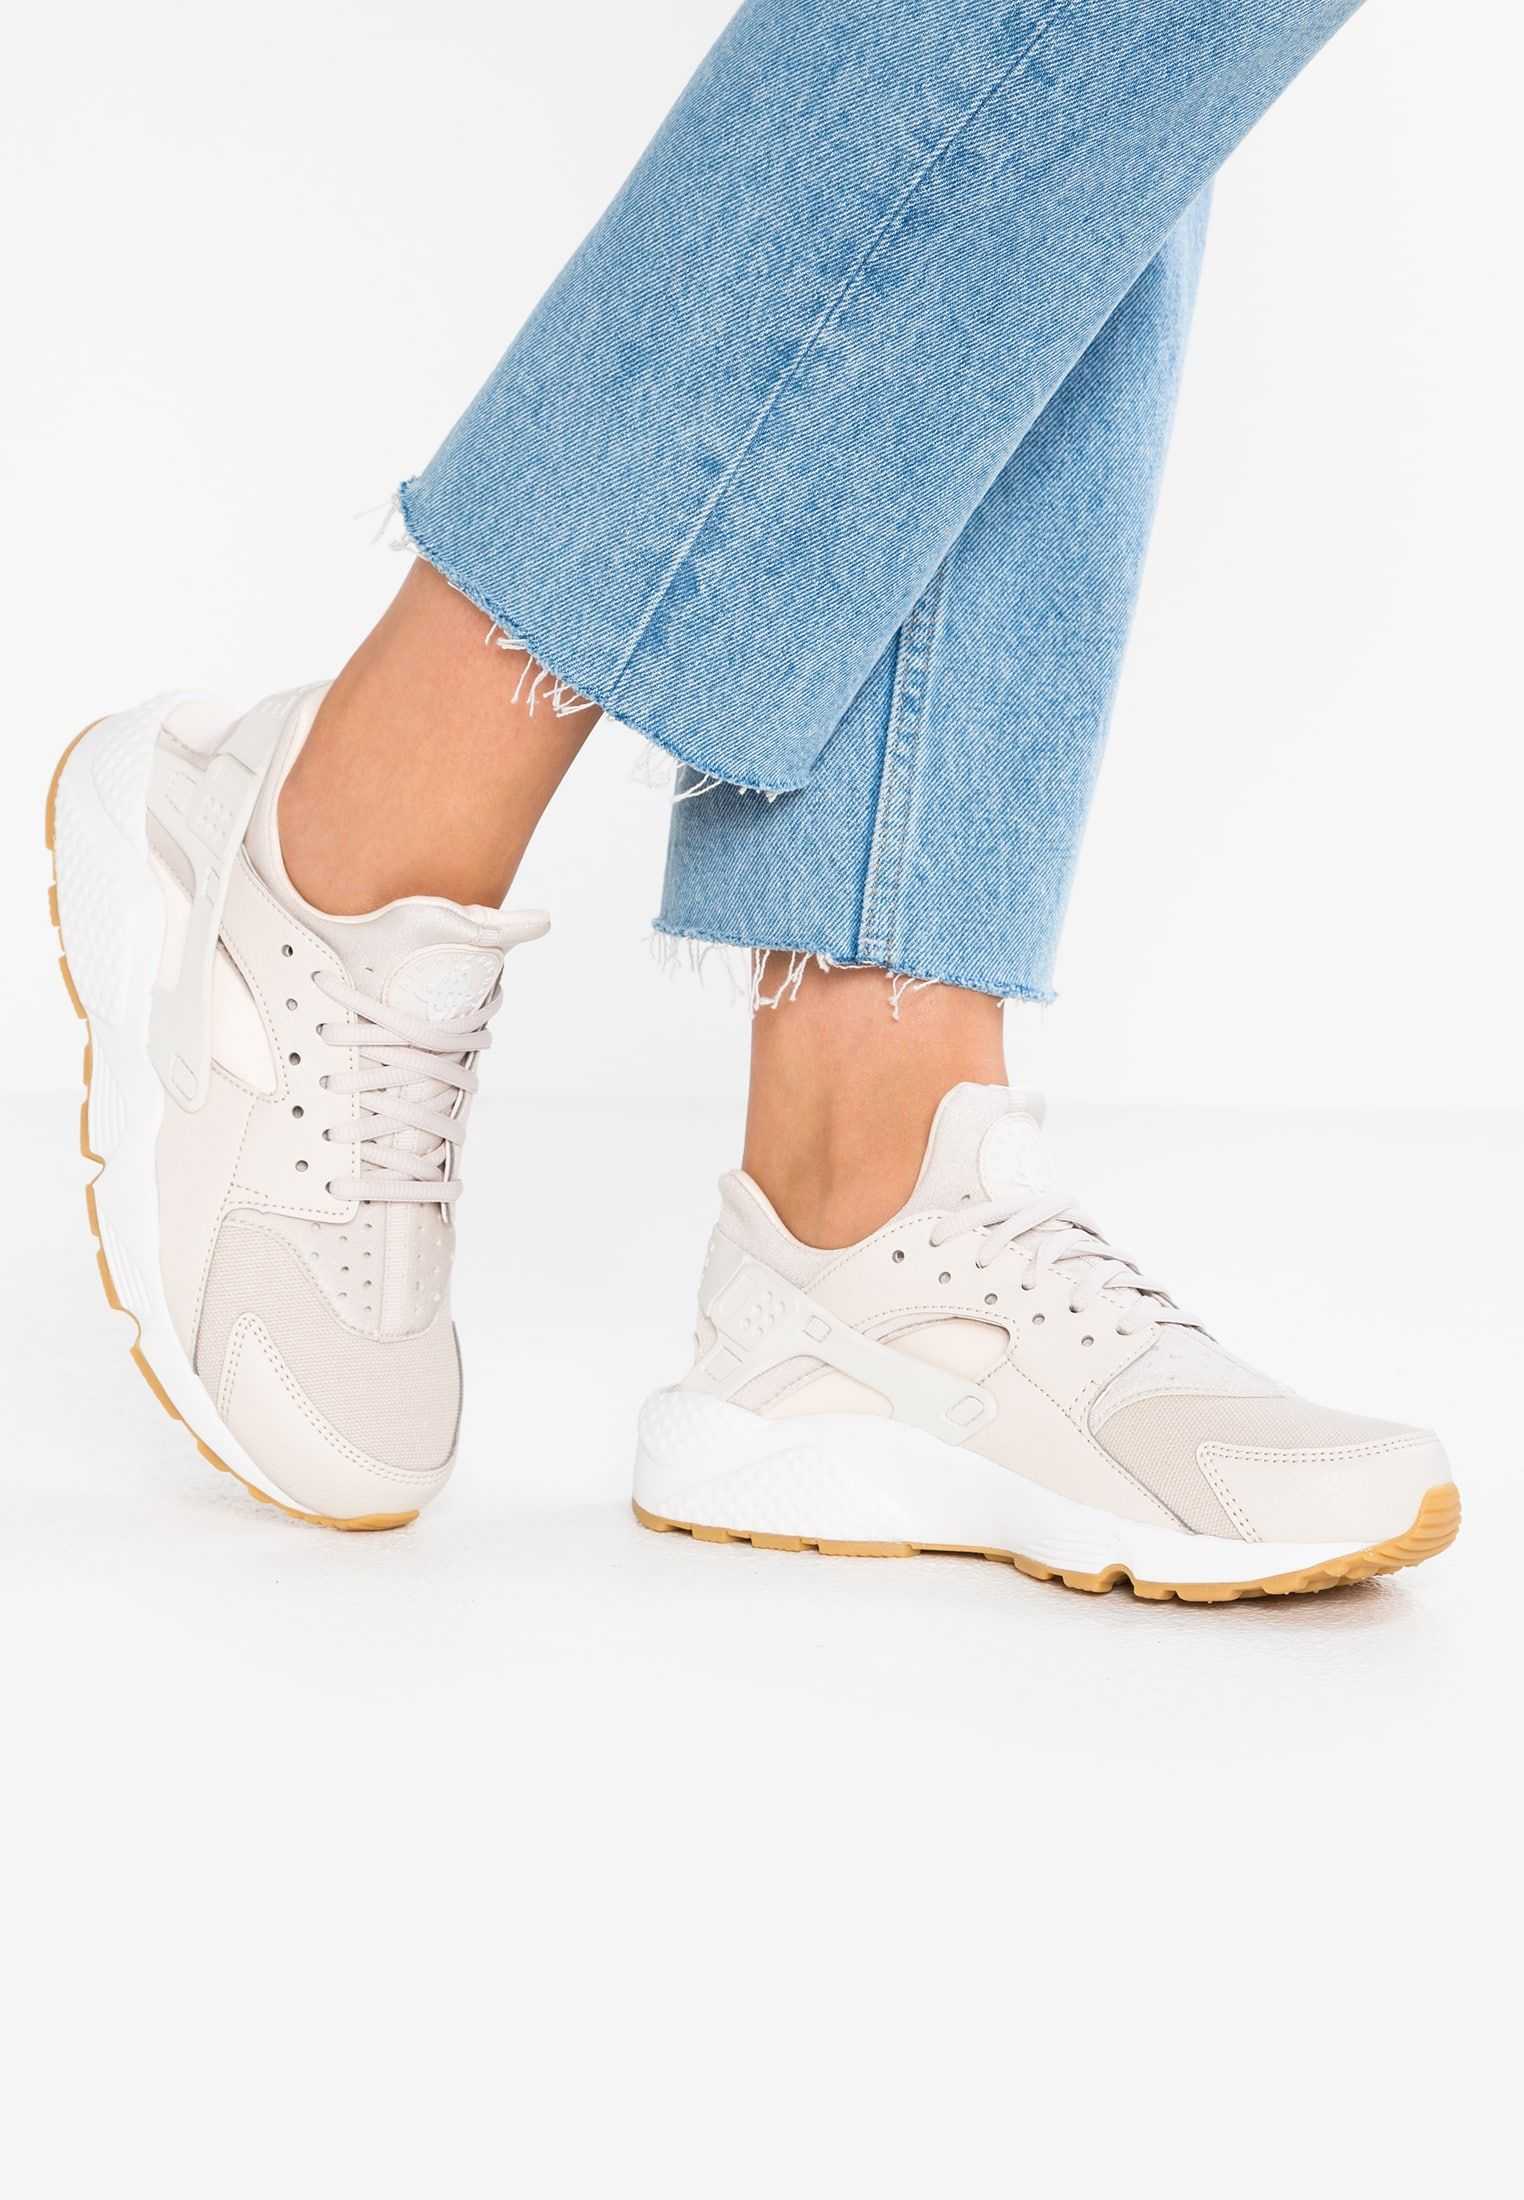 b5afff908fdb Nike Sportswear AIR HUARACHE RUN - Sneakers laag - desert sand summit white guava  ice light brown - Zalando.nl